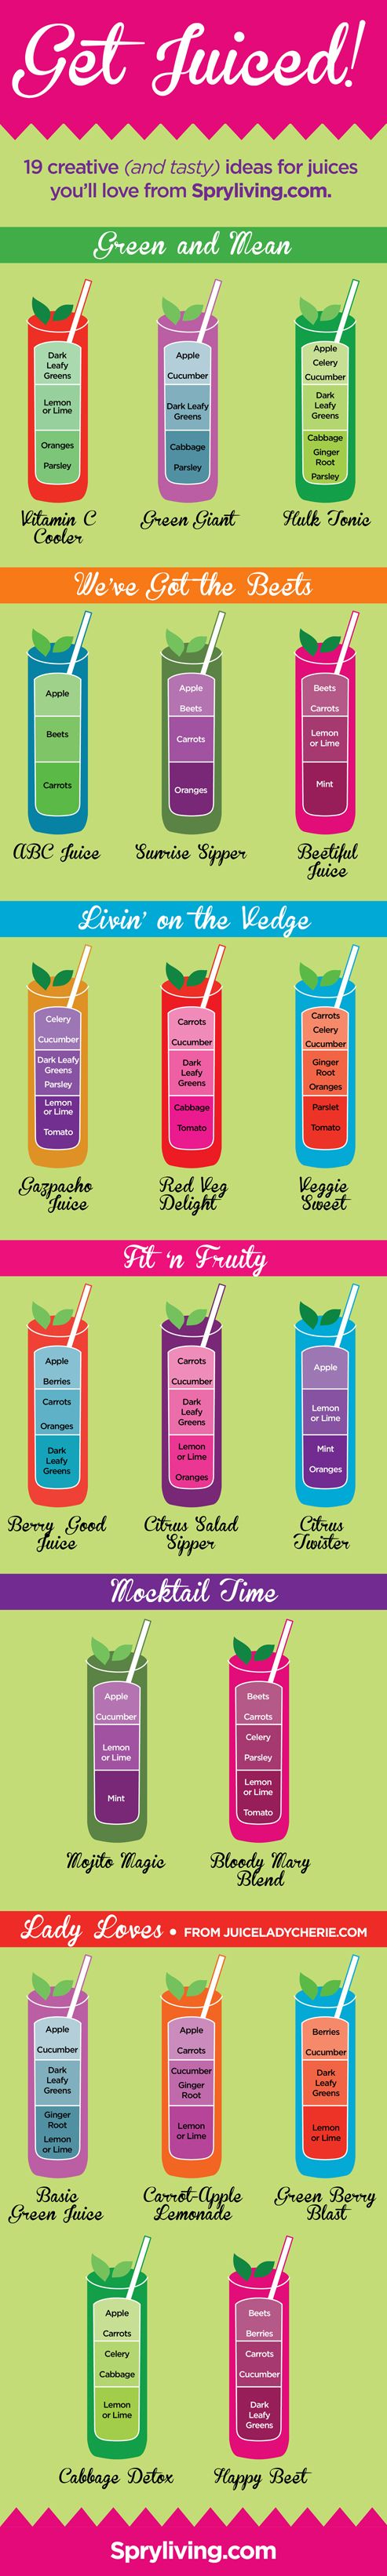 The Best Juicing Recipes Ever! | Spry LivingSpry Living